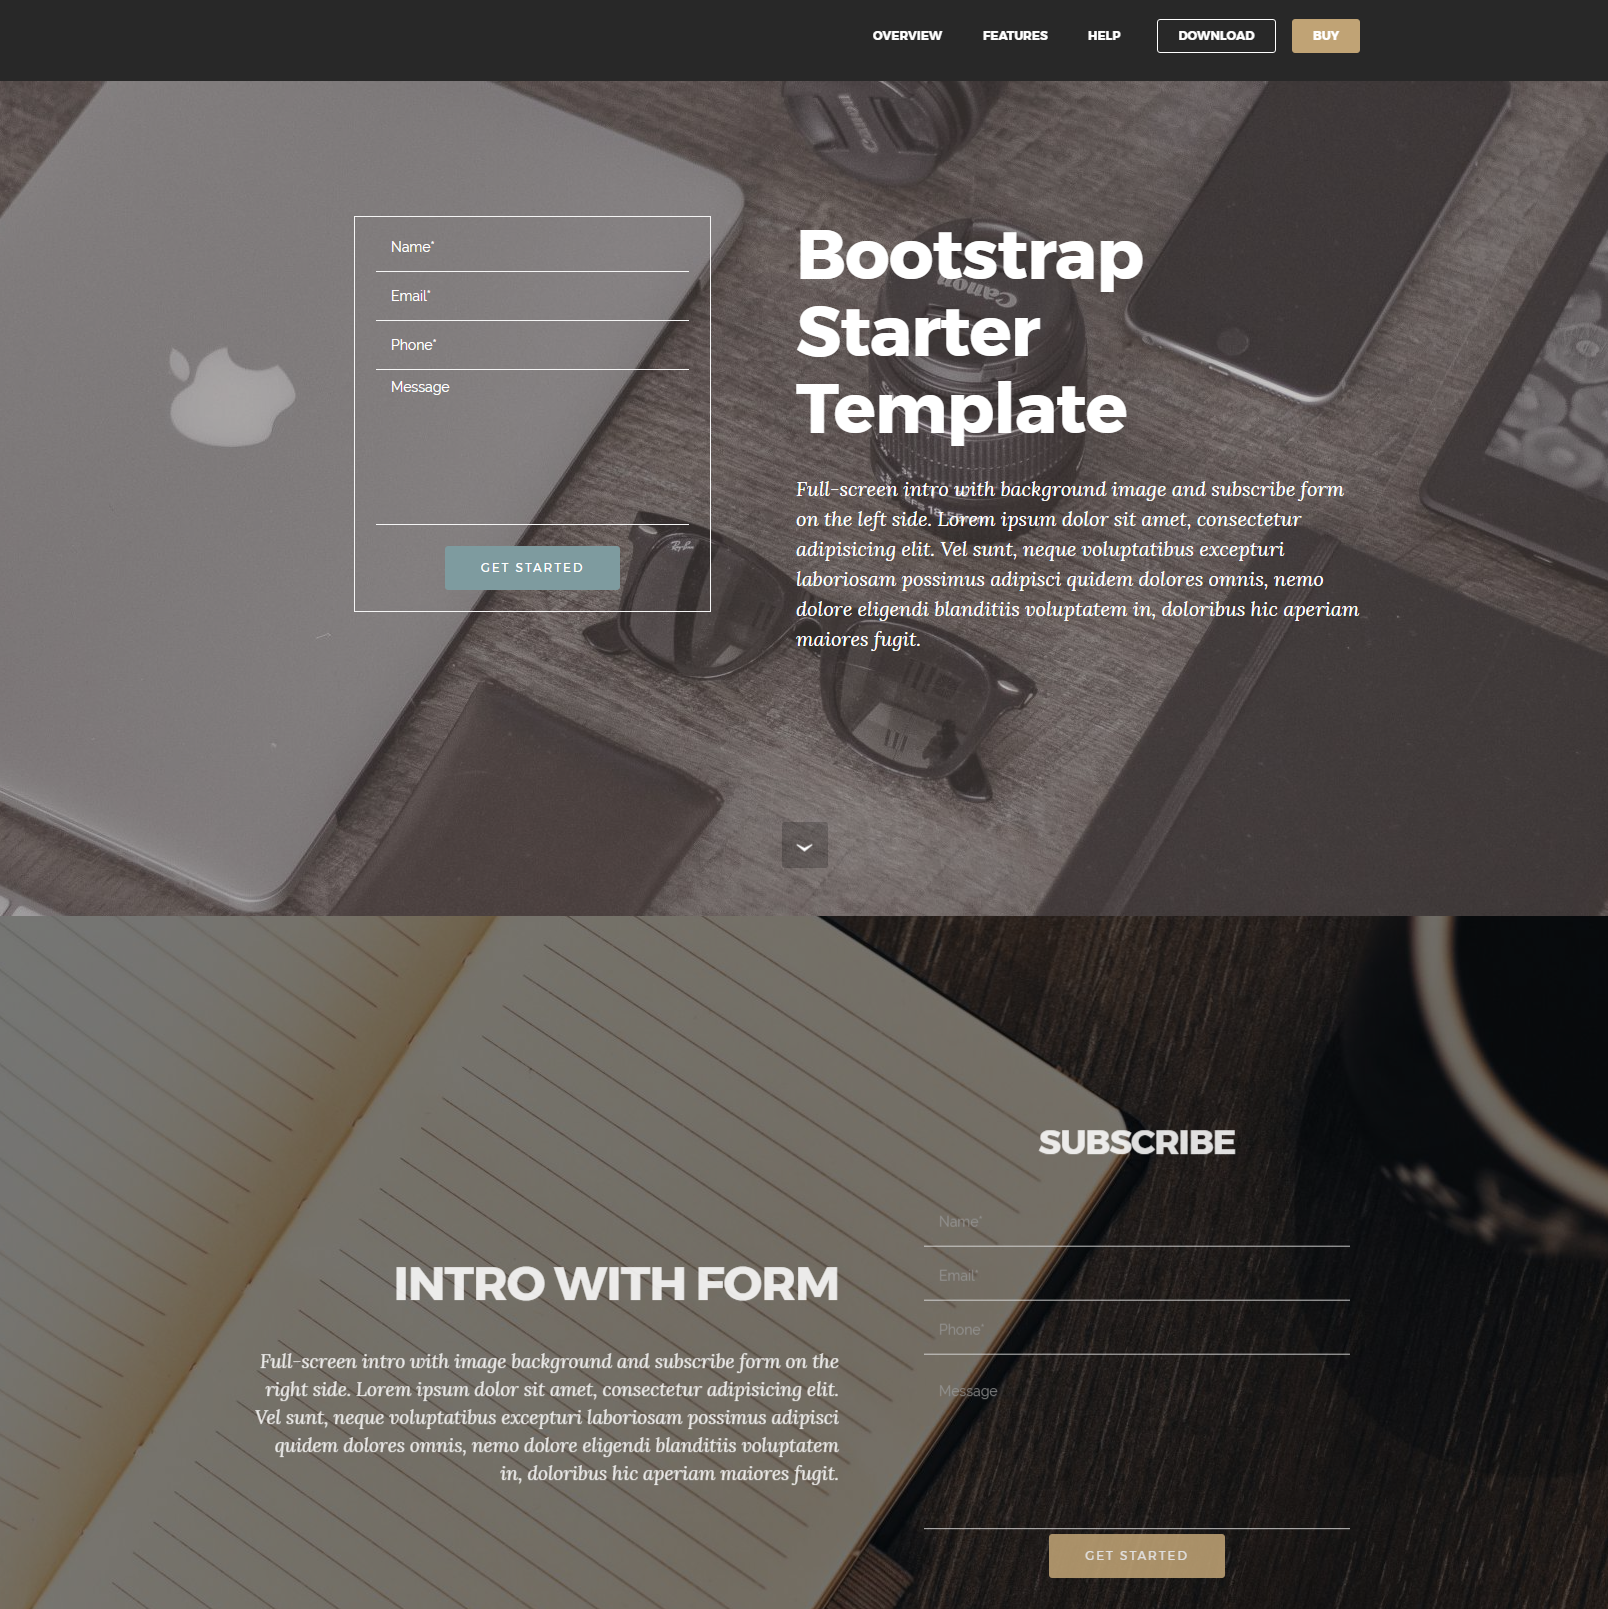 Free Bootstrap Starter Templates